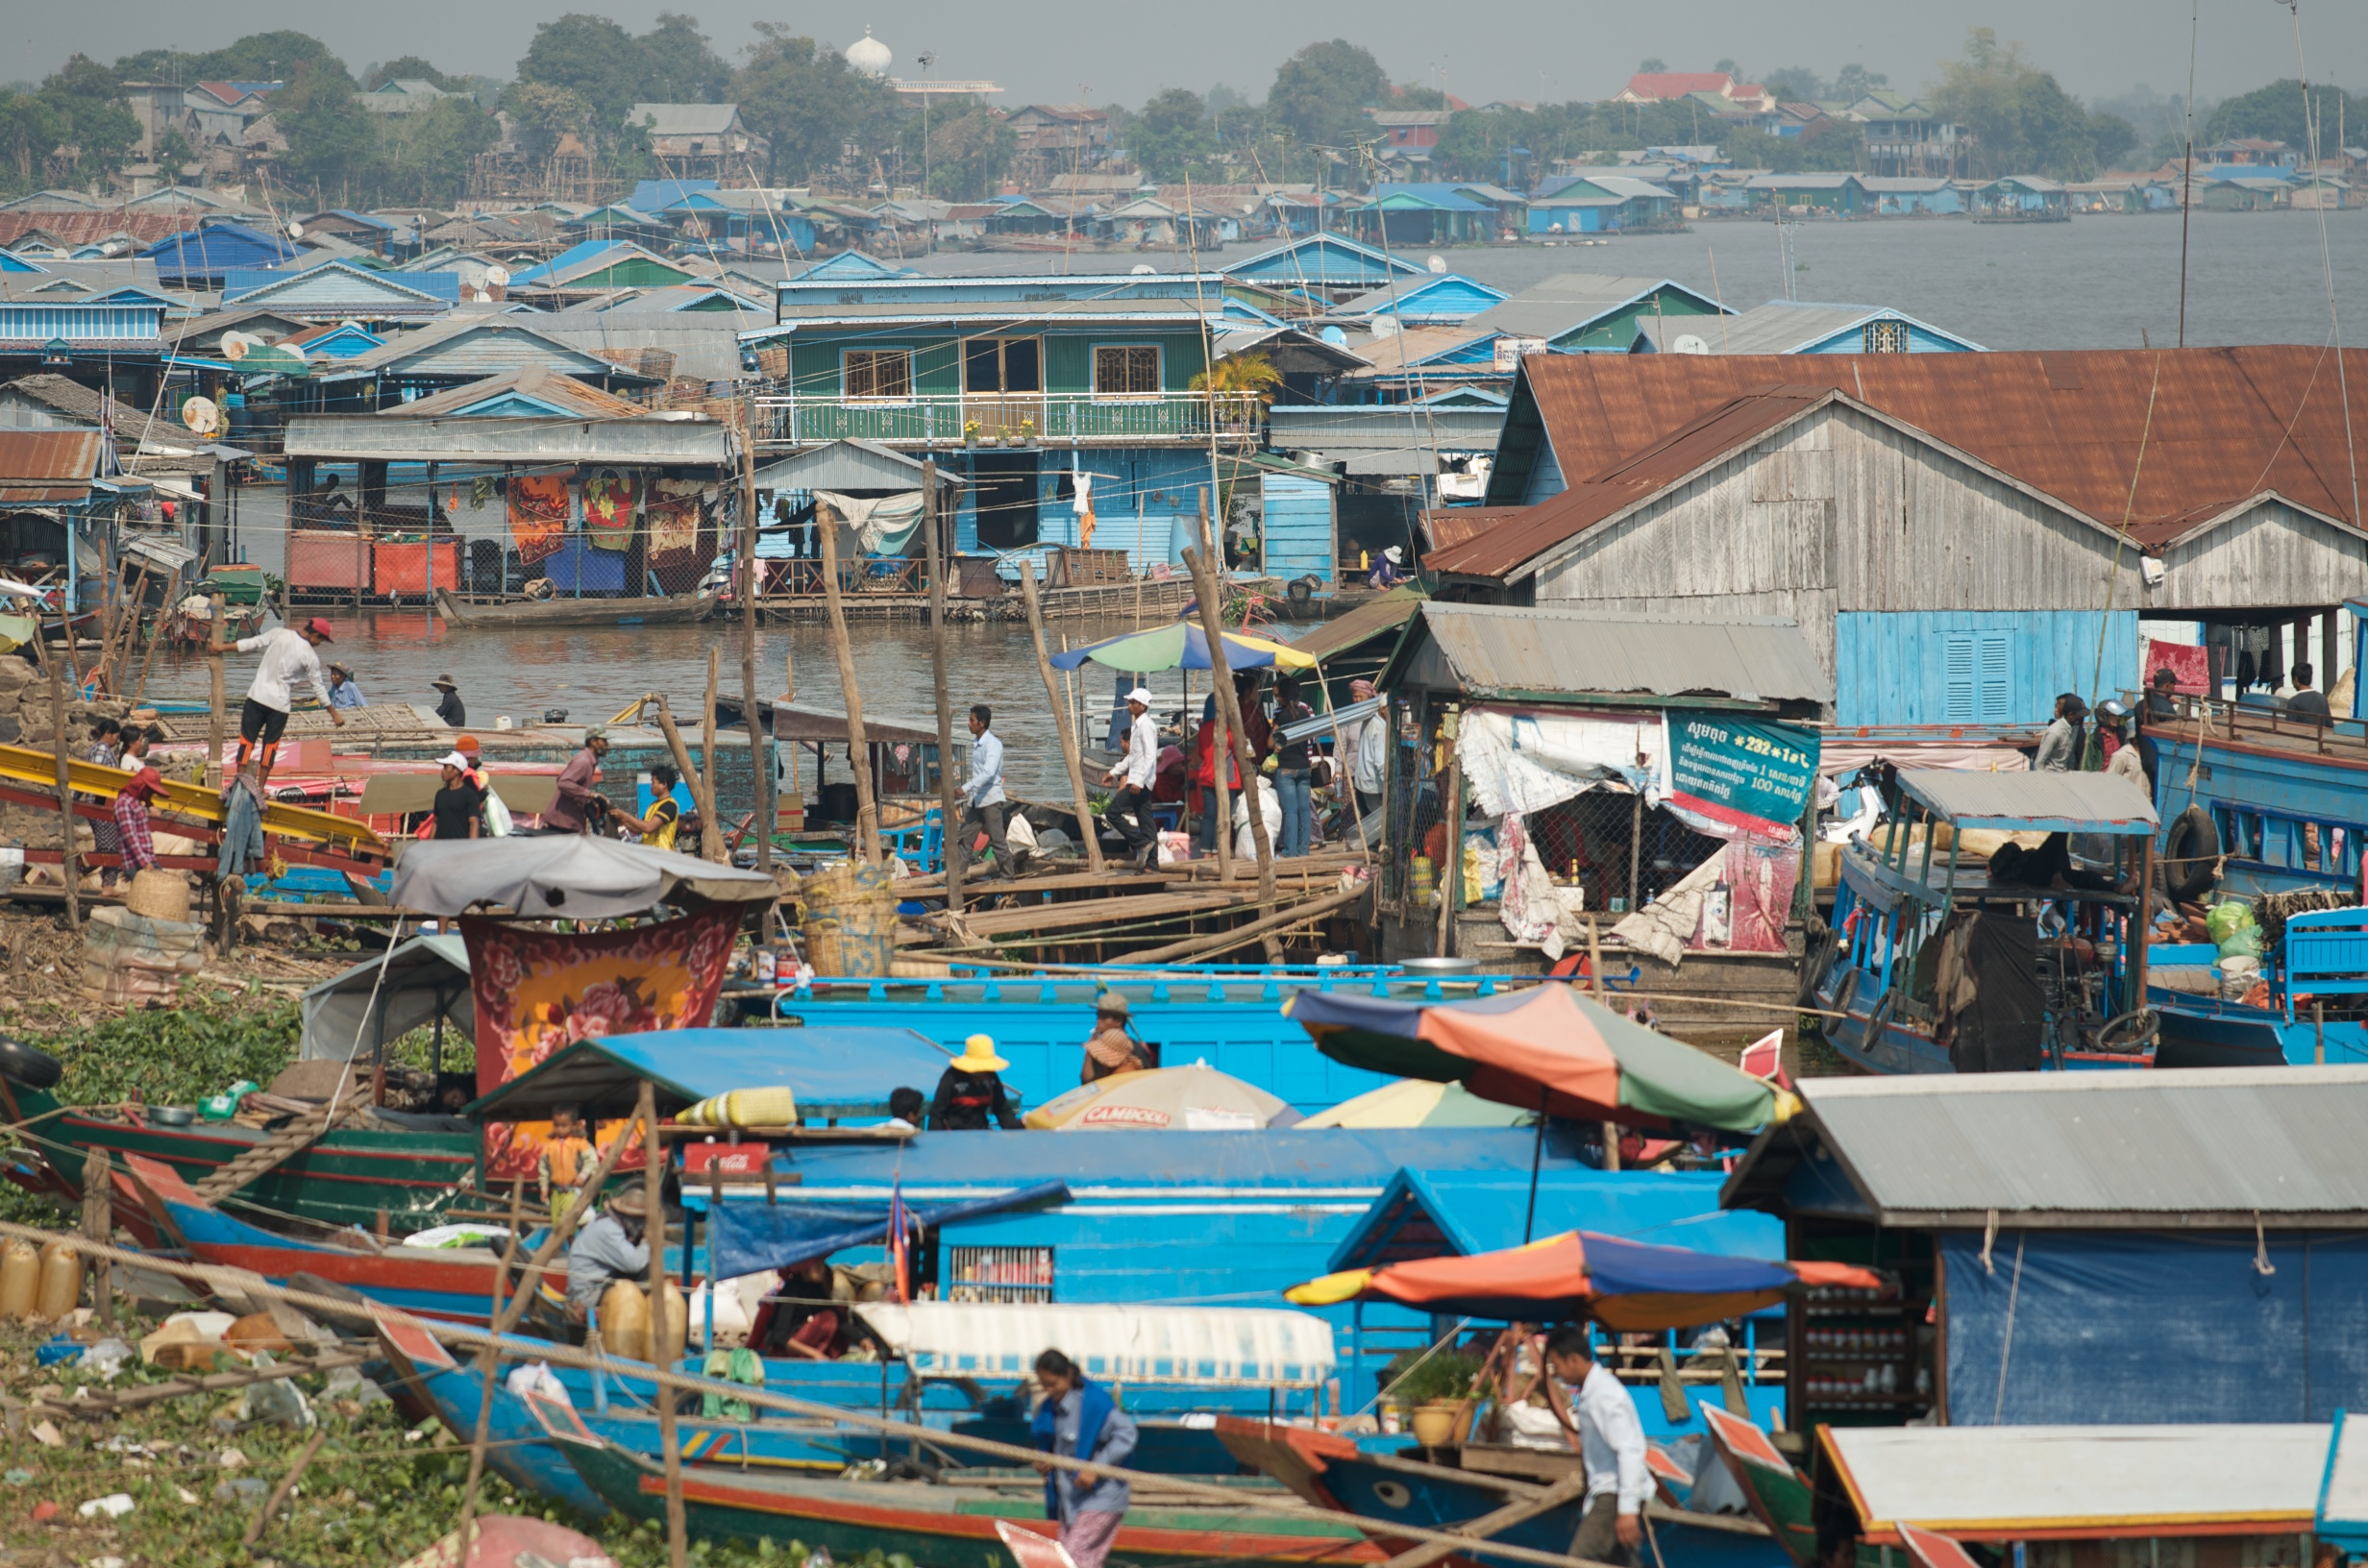 Goods are quickly loaded and unloaded before being distributed across The Great Lake. | Tonle Sap, Cambodia